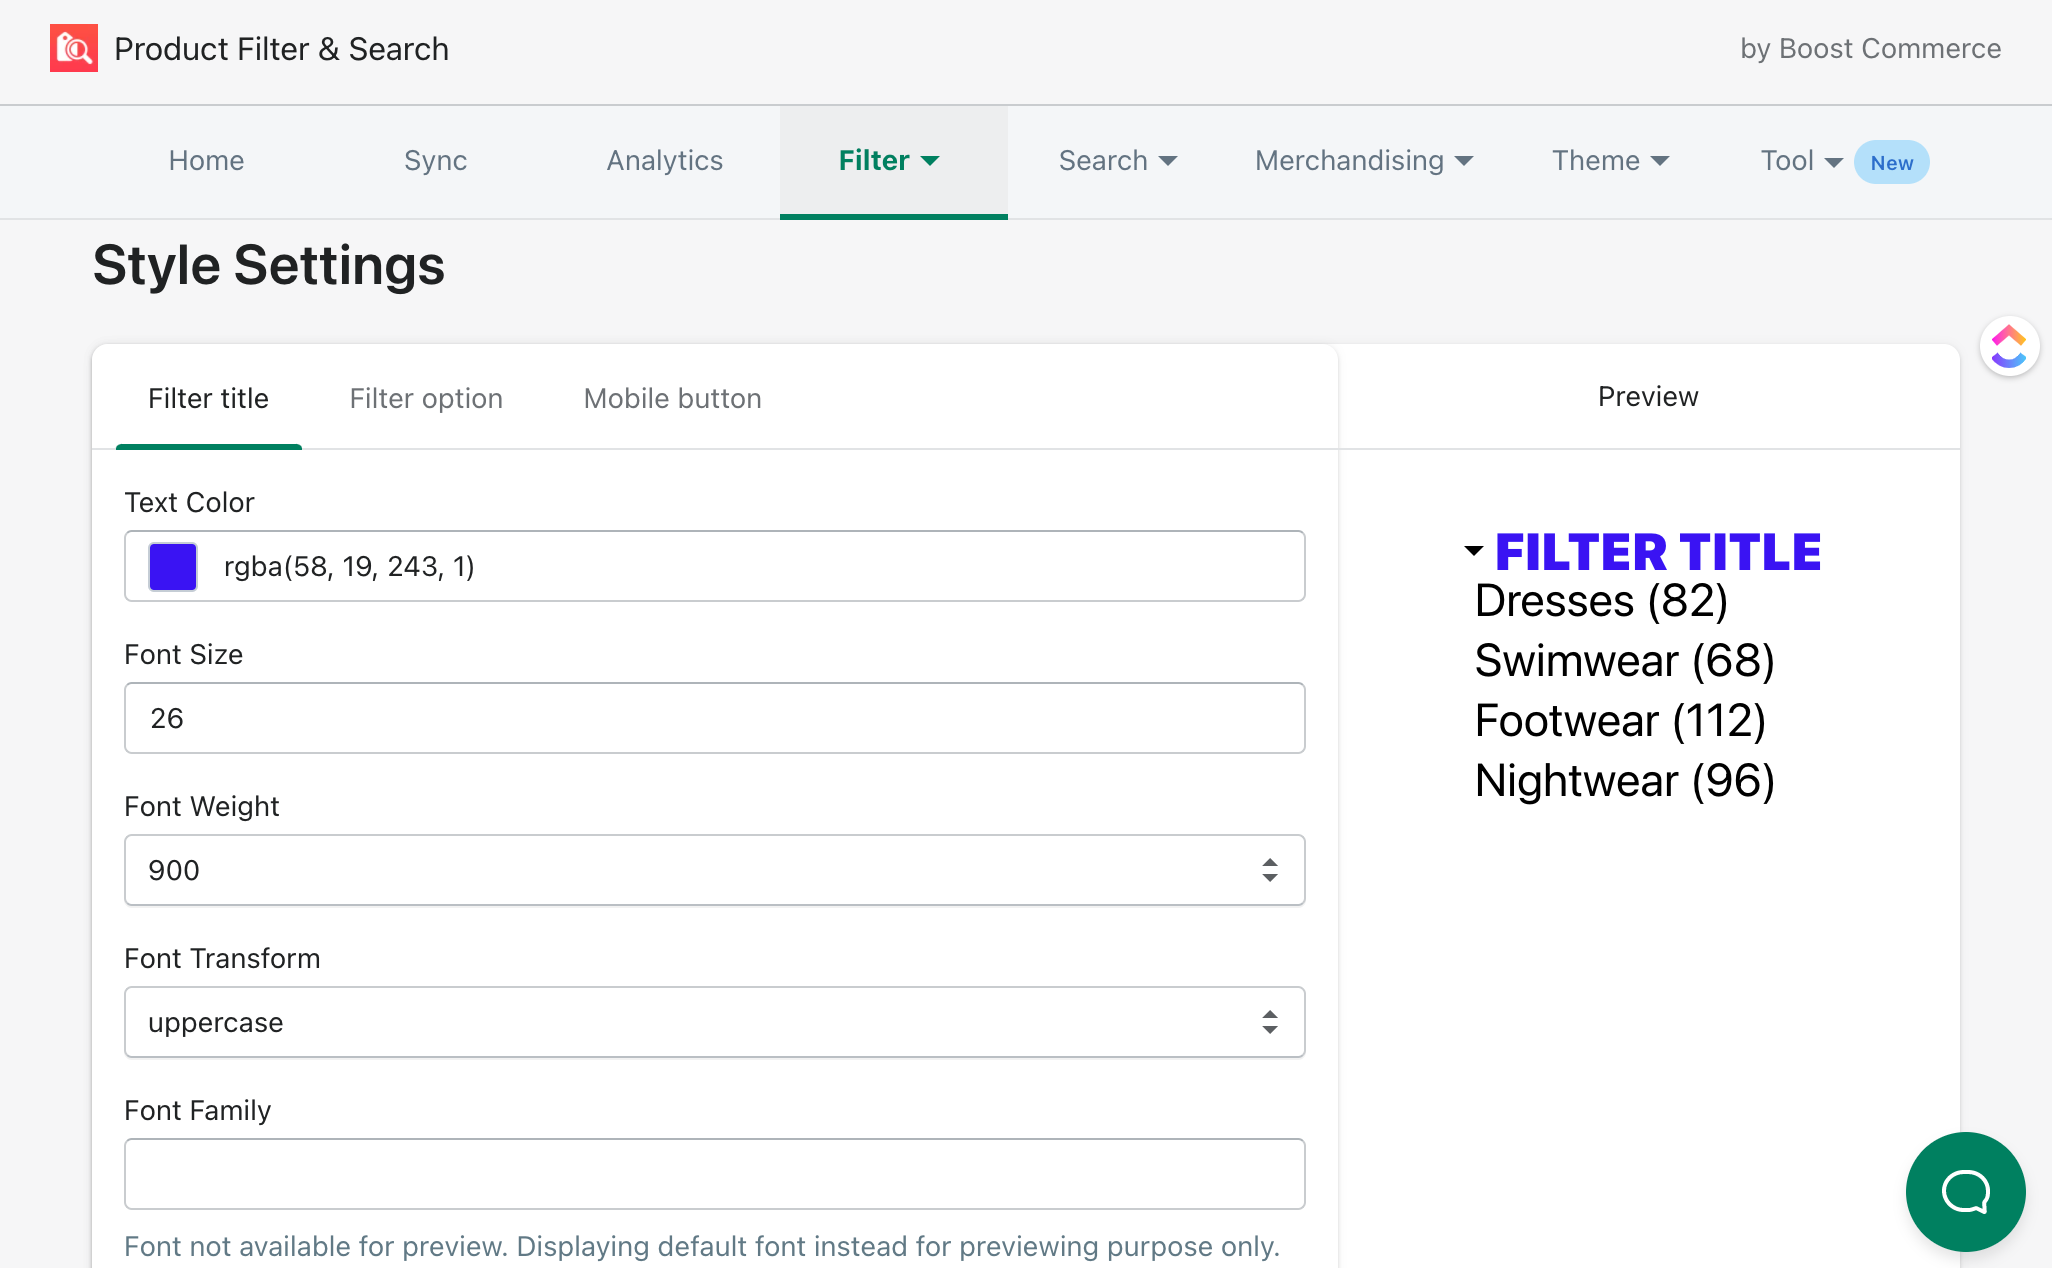 styling product filters with boost product filter & search